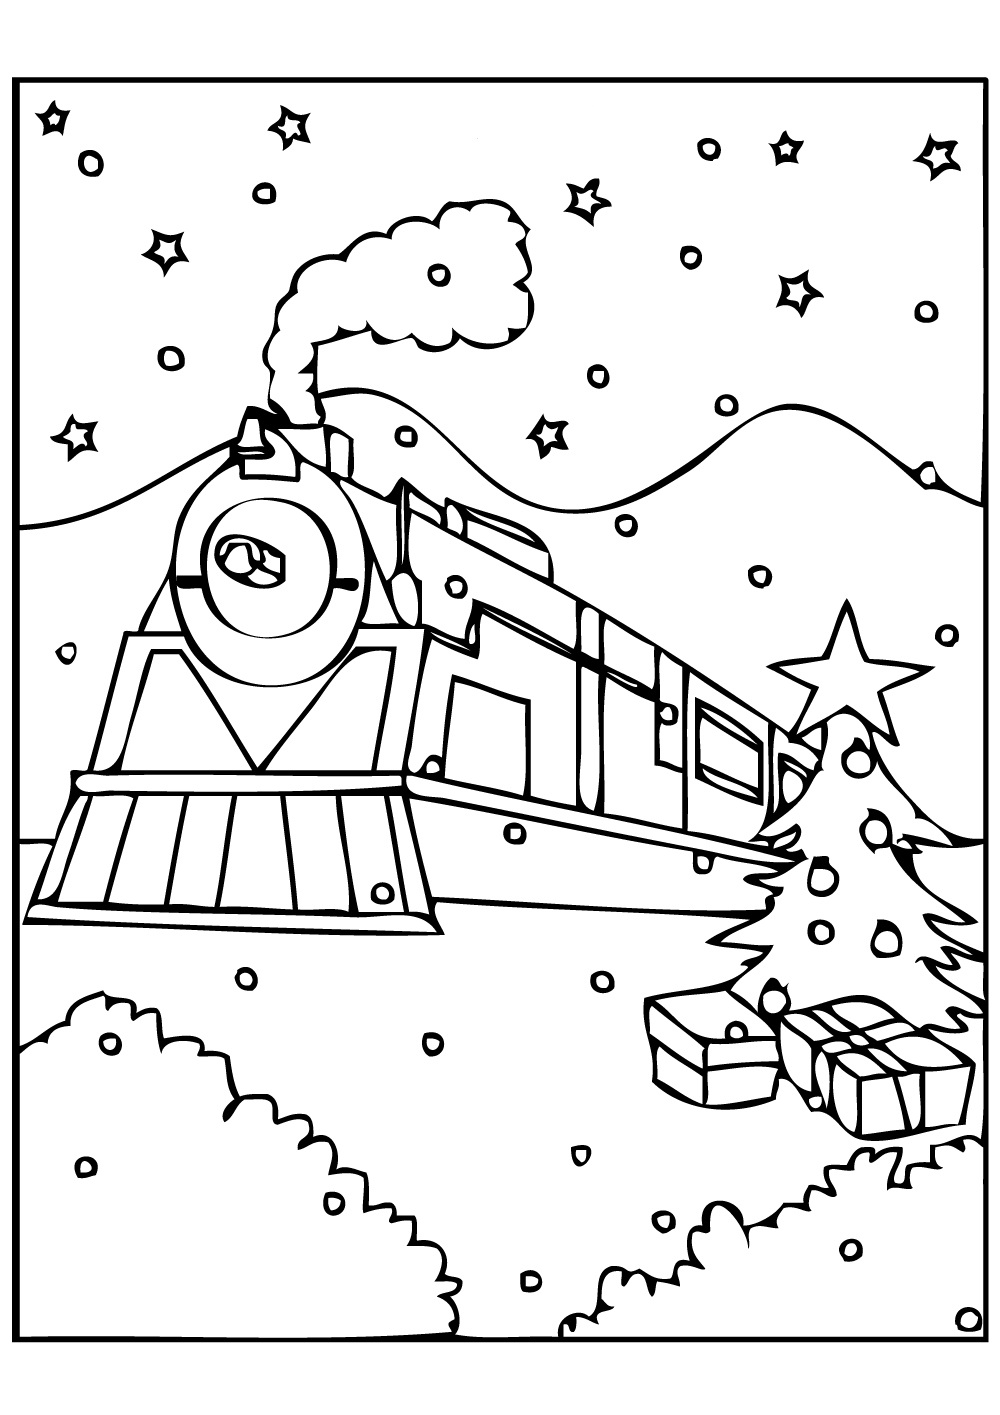 Polar Express Coloring Pages Best Coloring Pages For Kids